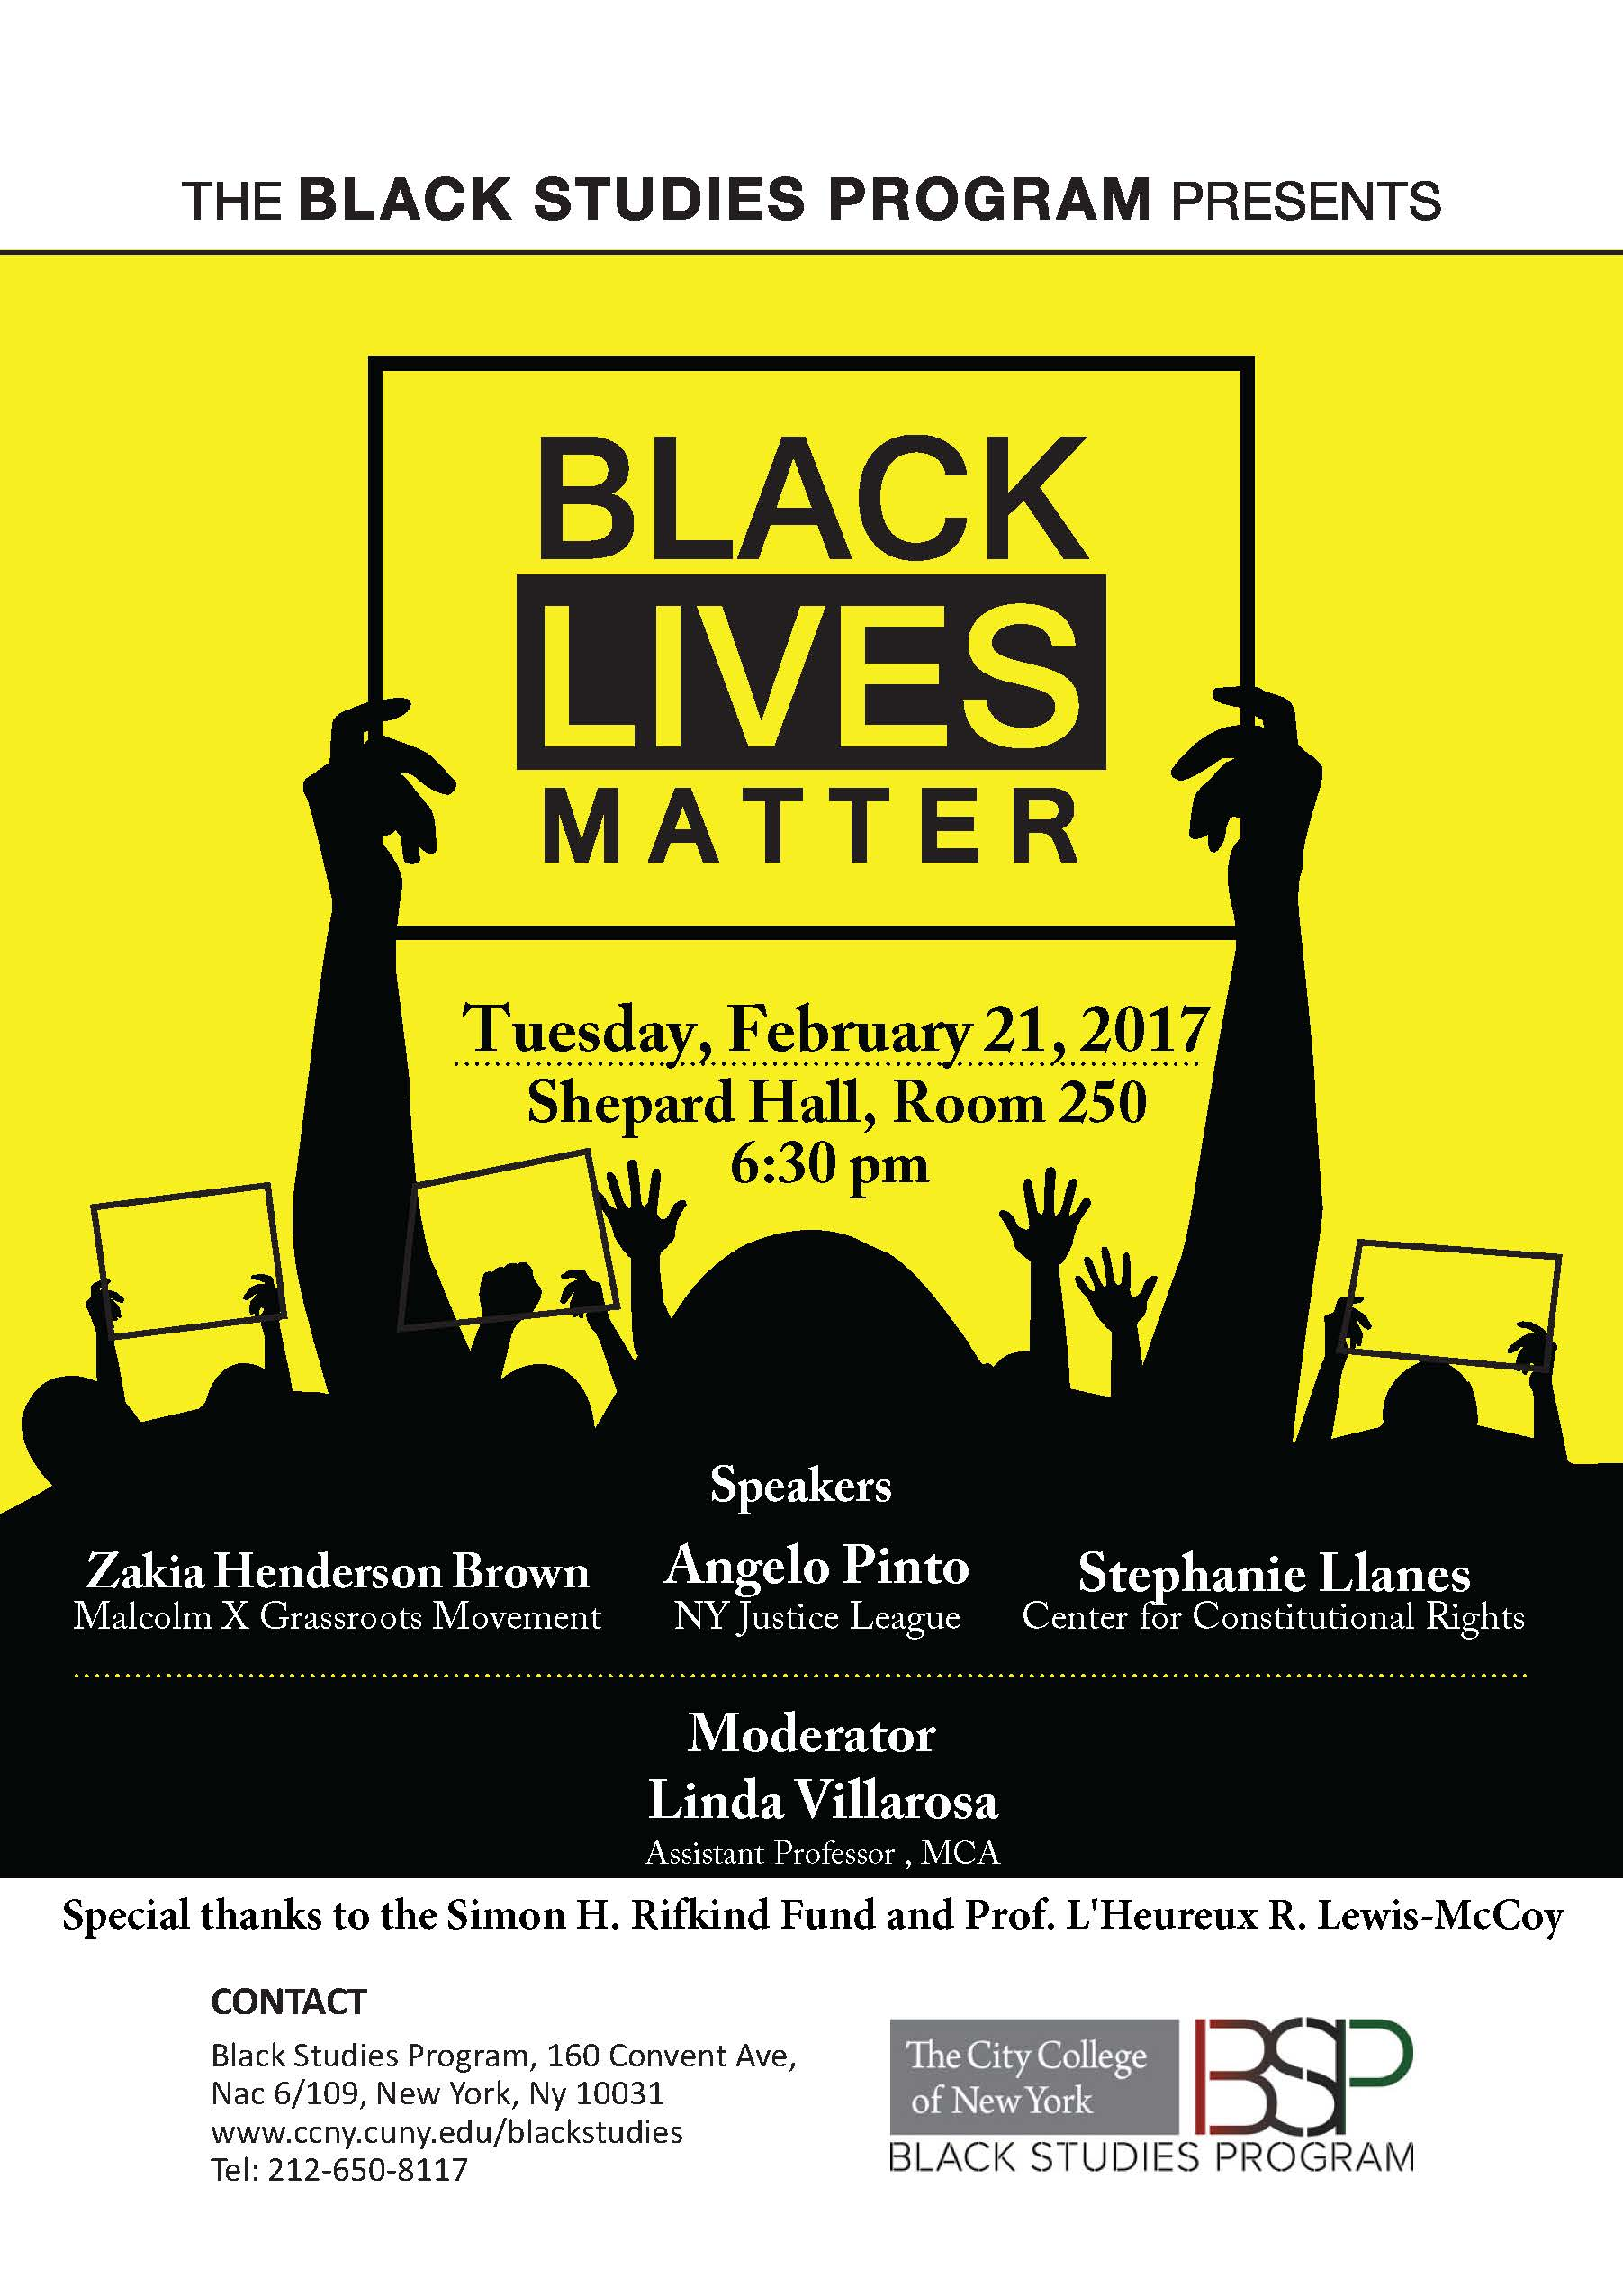 Black Lives Matters event Feb 21, 2017,Shepard Hall room 250. speakers: Zakia Brown, Angelo Pinto, and Stephanie Llanes. Moderator Linda Villarosa.Presented by Black Studies Program.